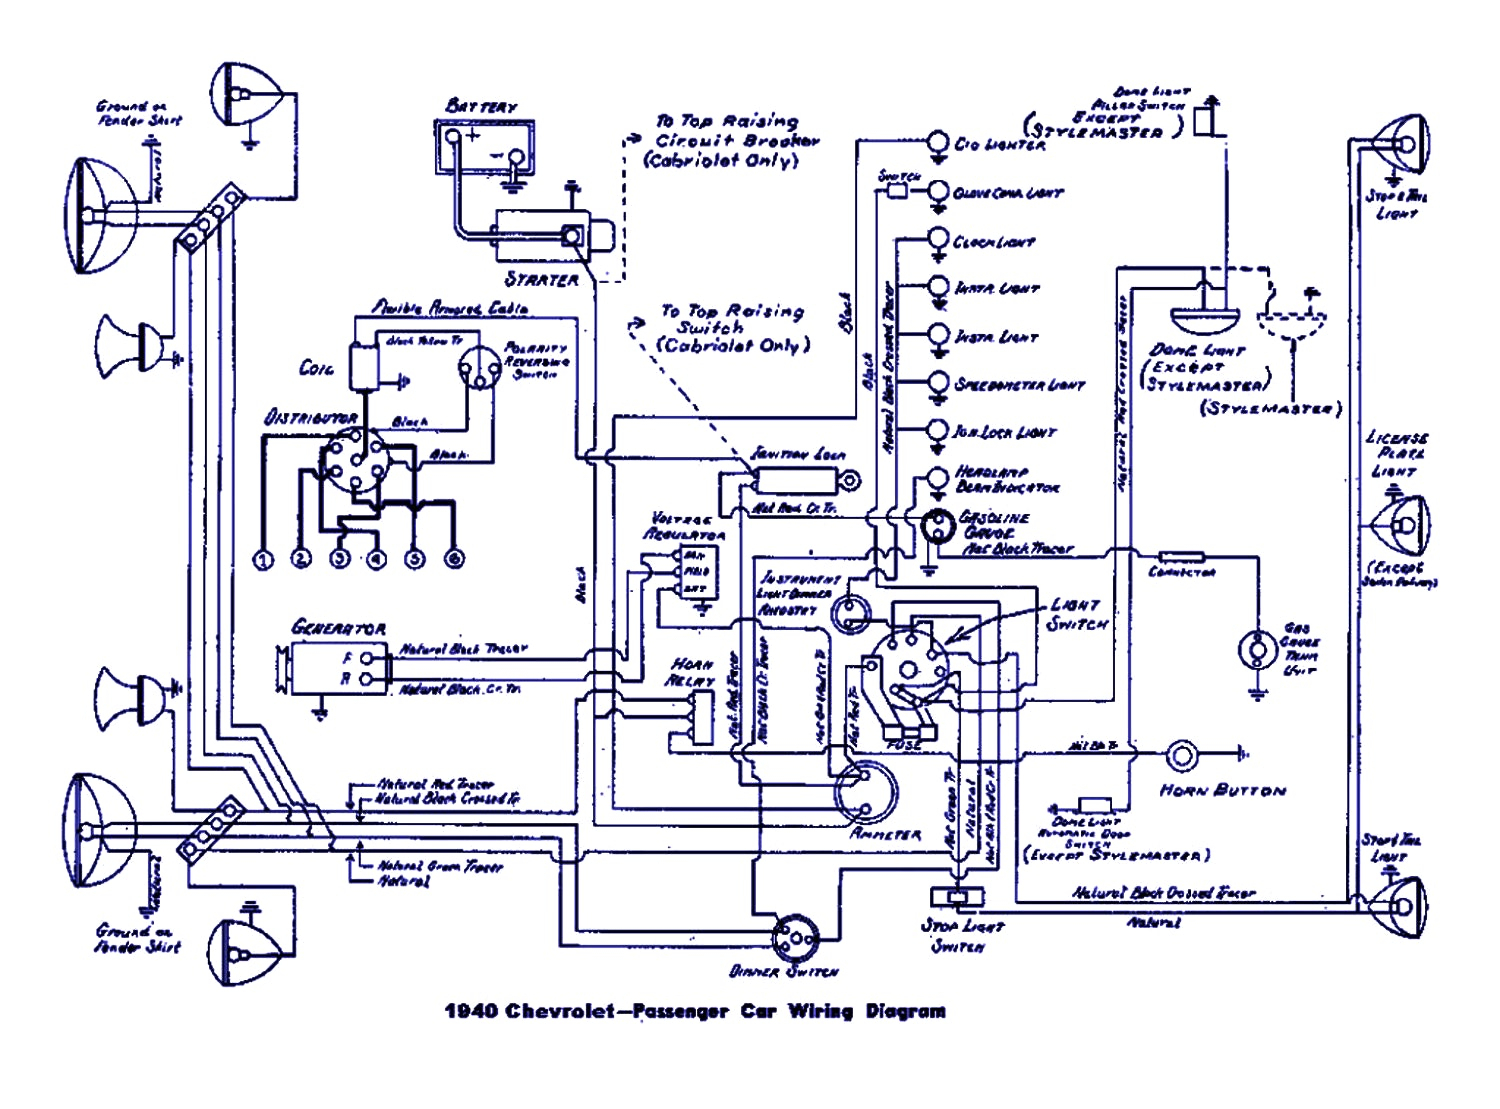 medium resolution of typical golf cart wiring diagram wiring schematic symbols chart here39s a typical schematic of how such an eesb5v setup might look